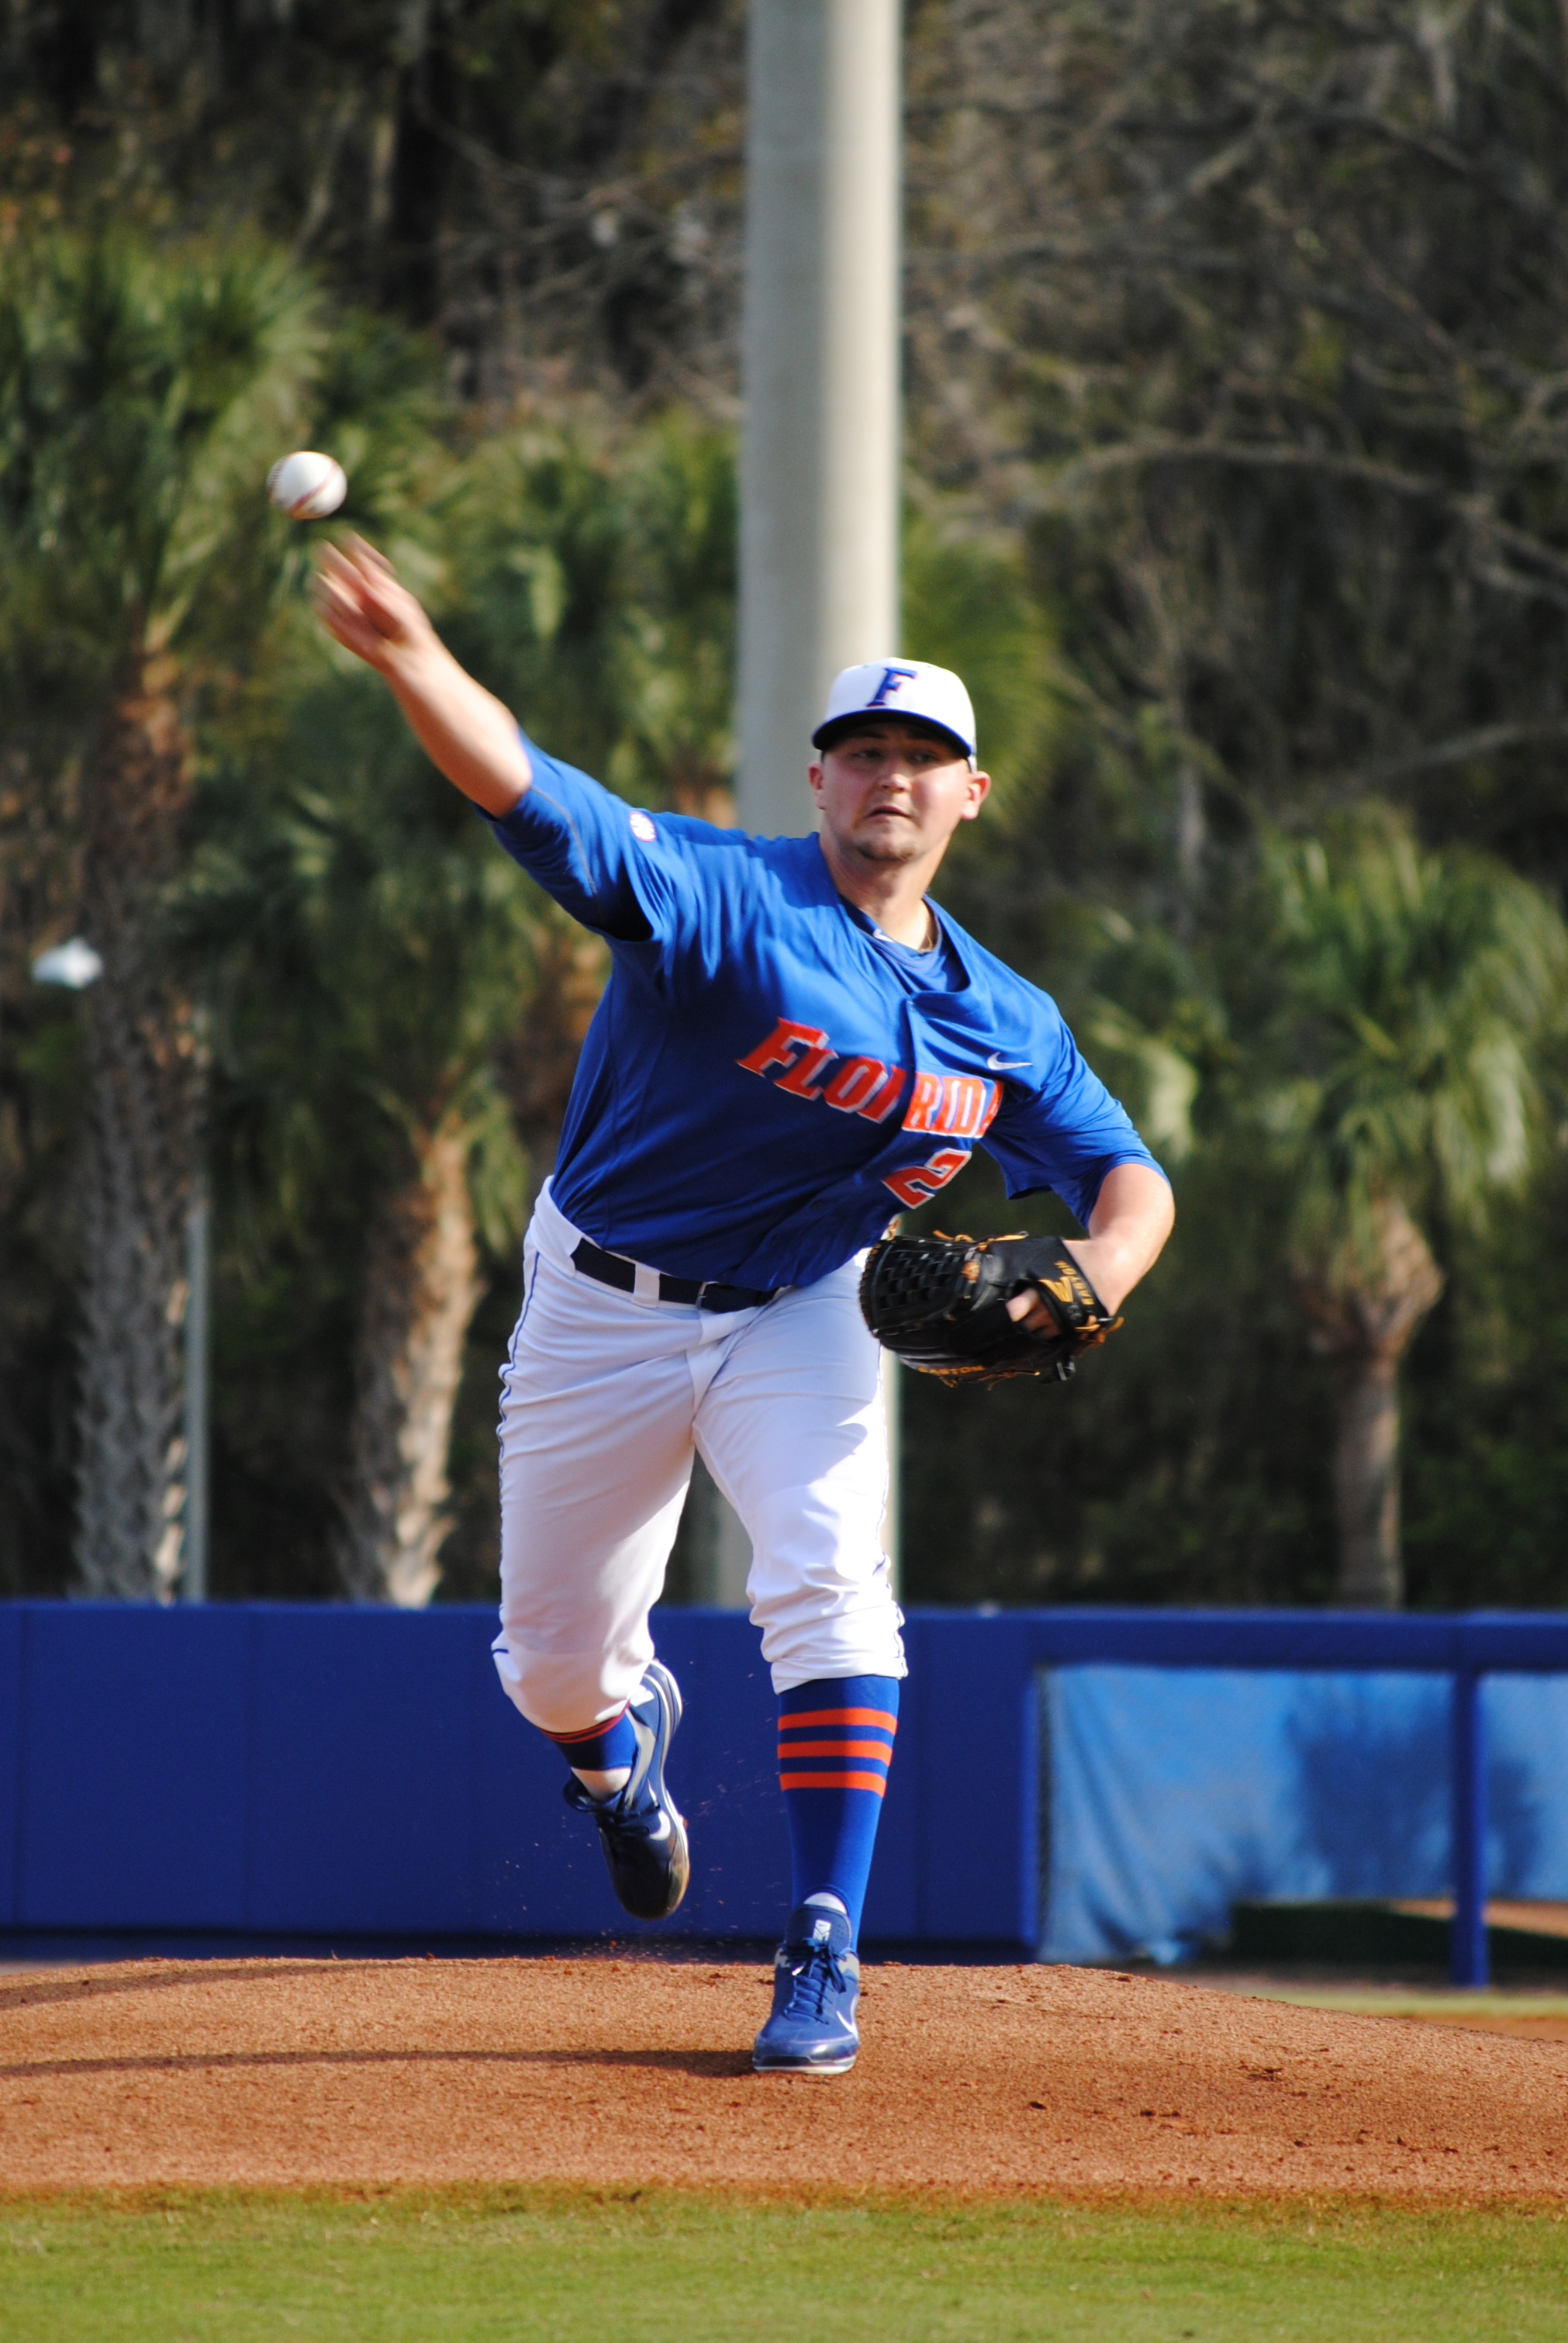 Sophomore Karsten Whitson starts pitching for the Florida Gators.